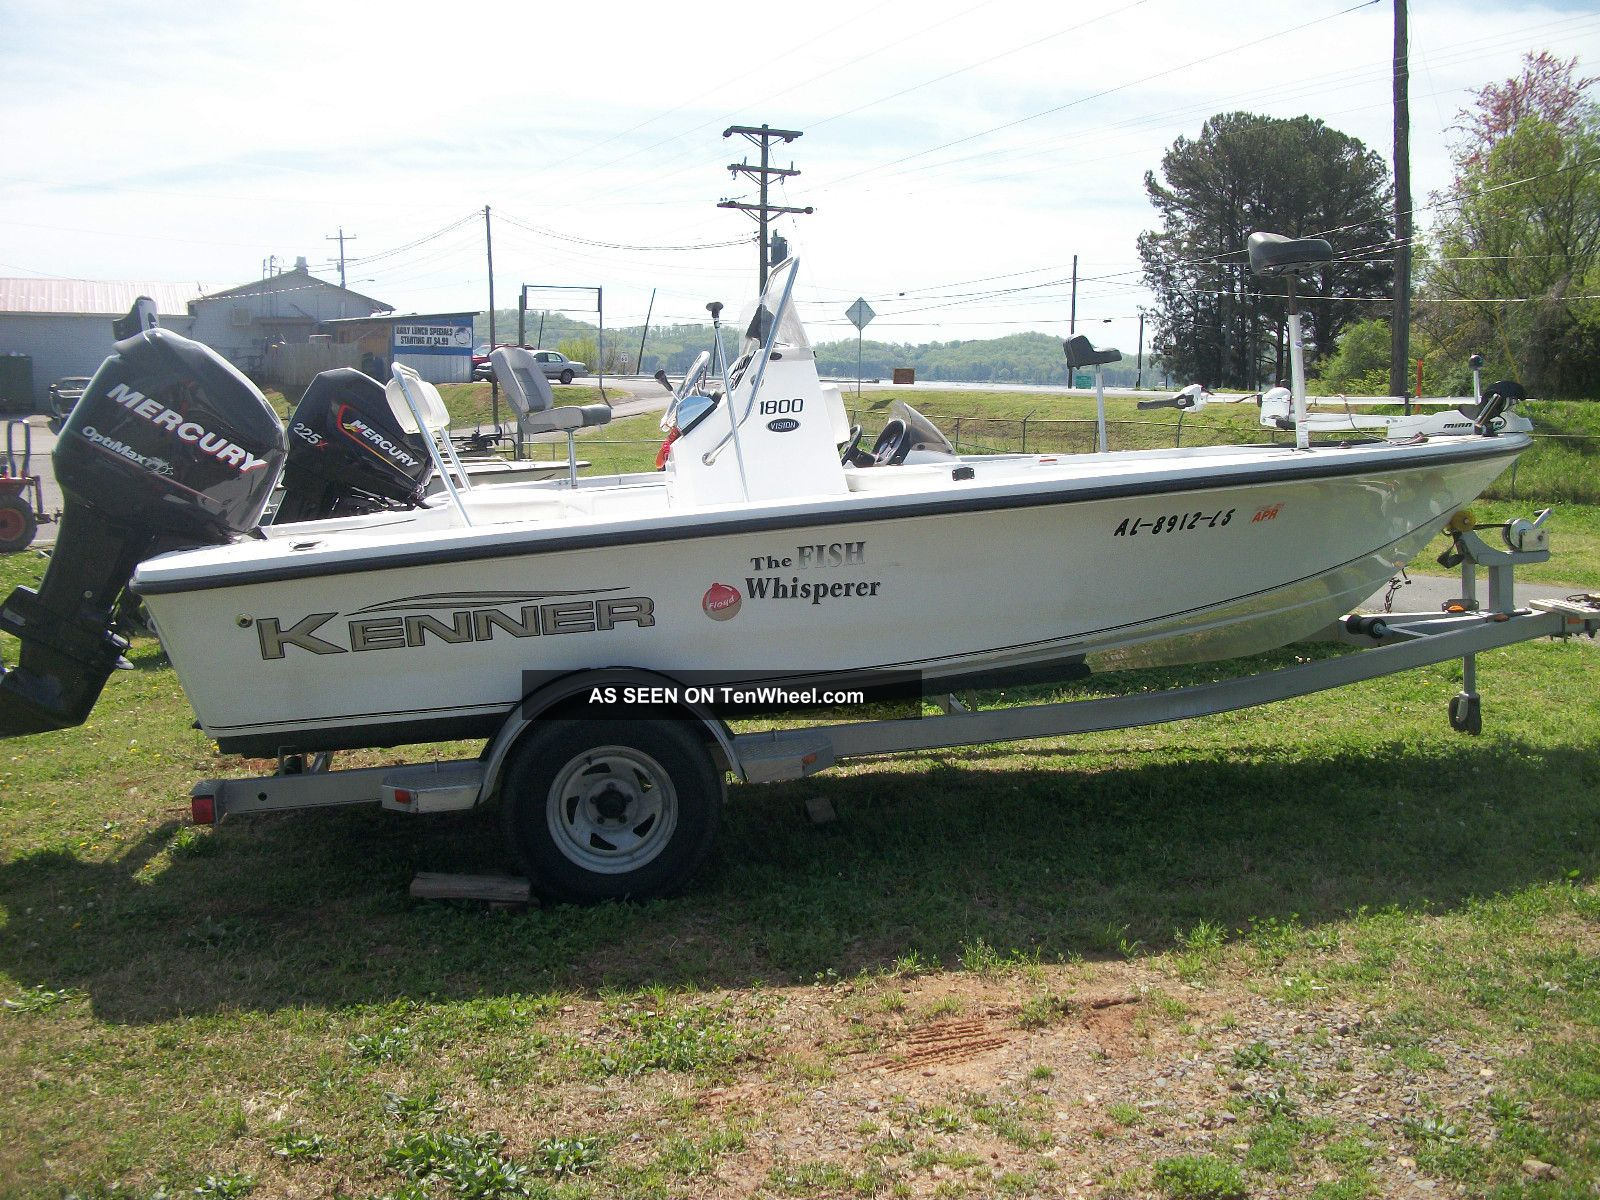 2008 Kenner 1800 Vision Inshore Saltwater Fishing photo